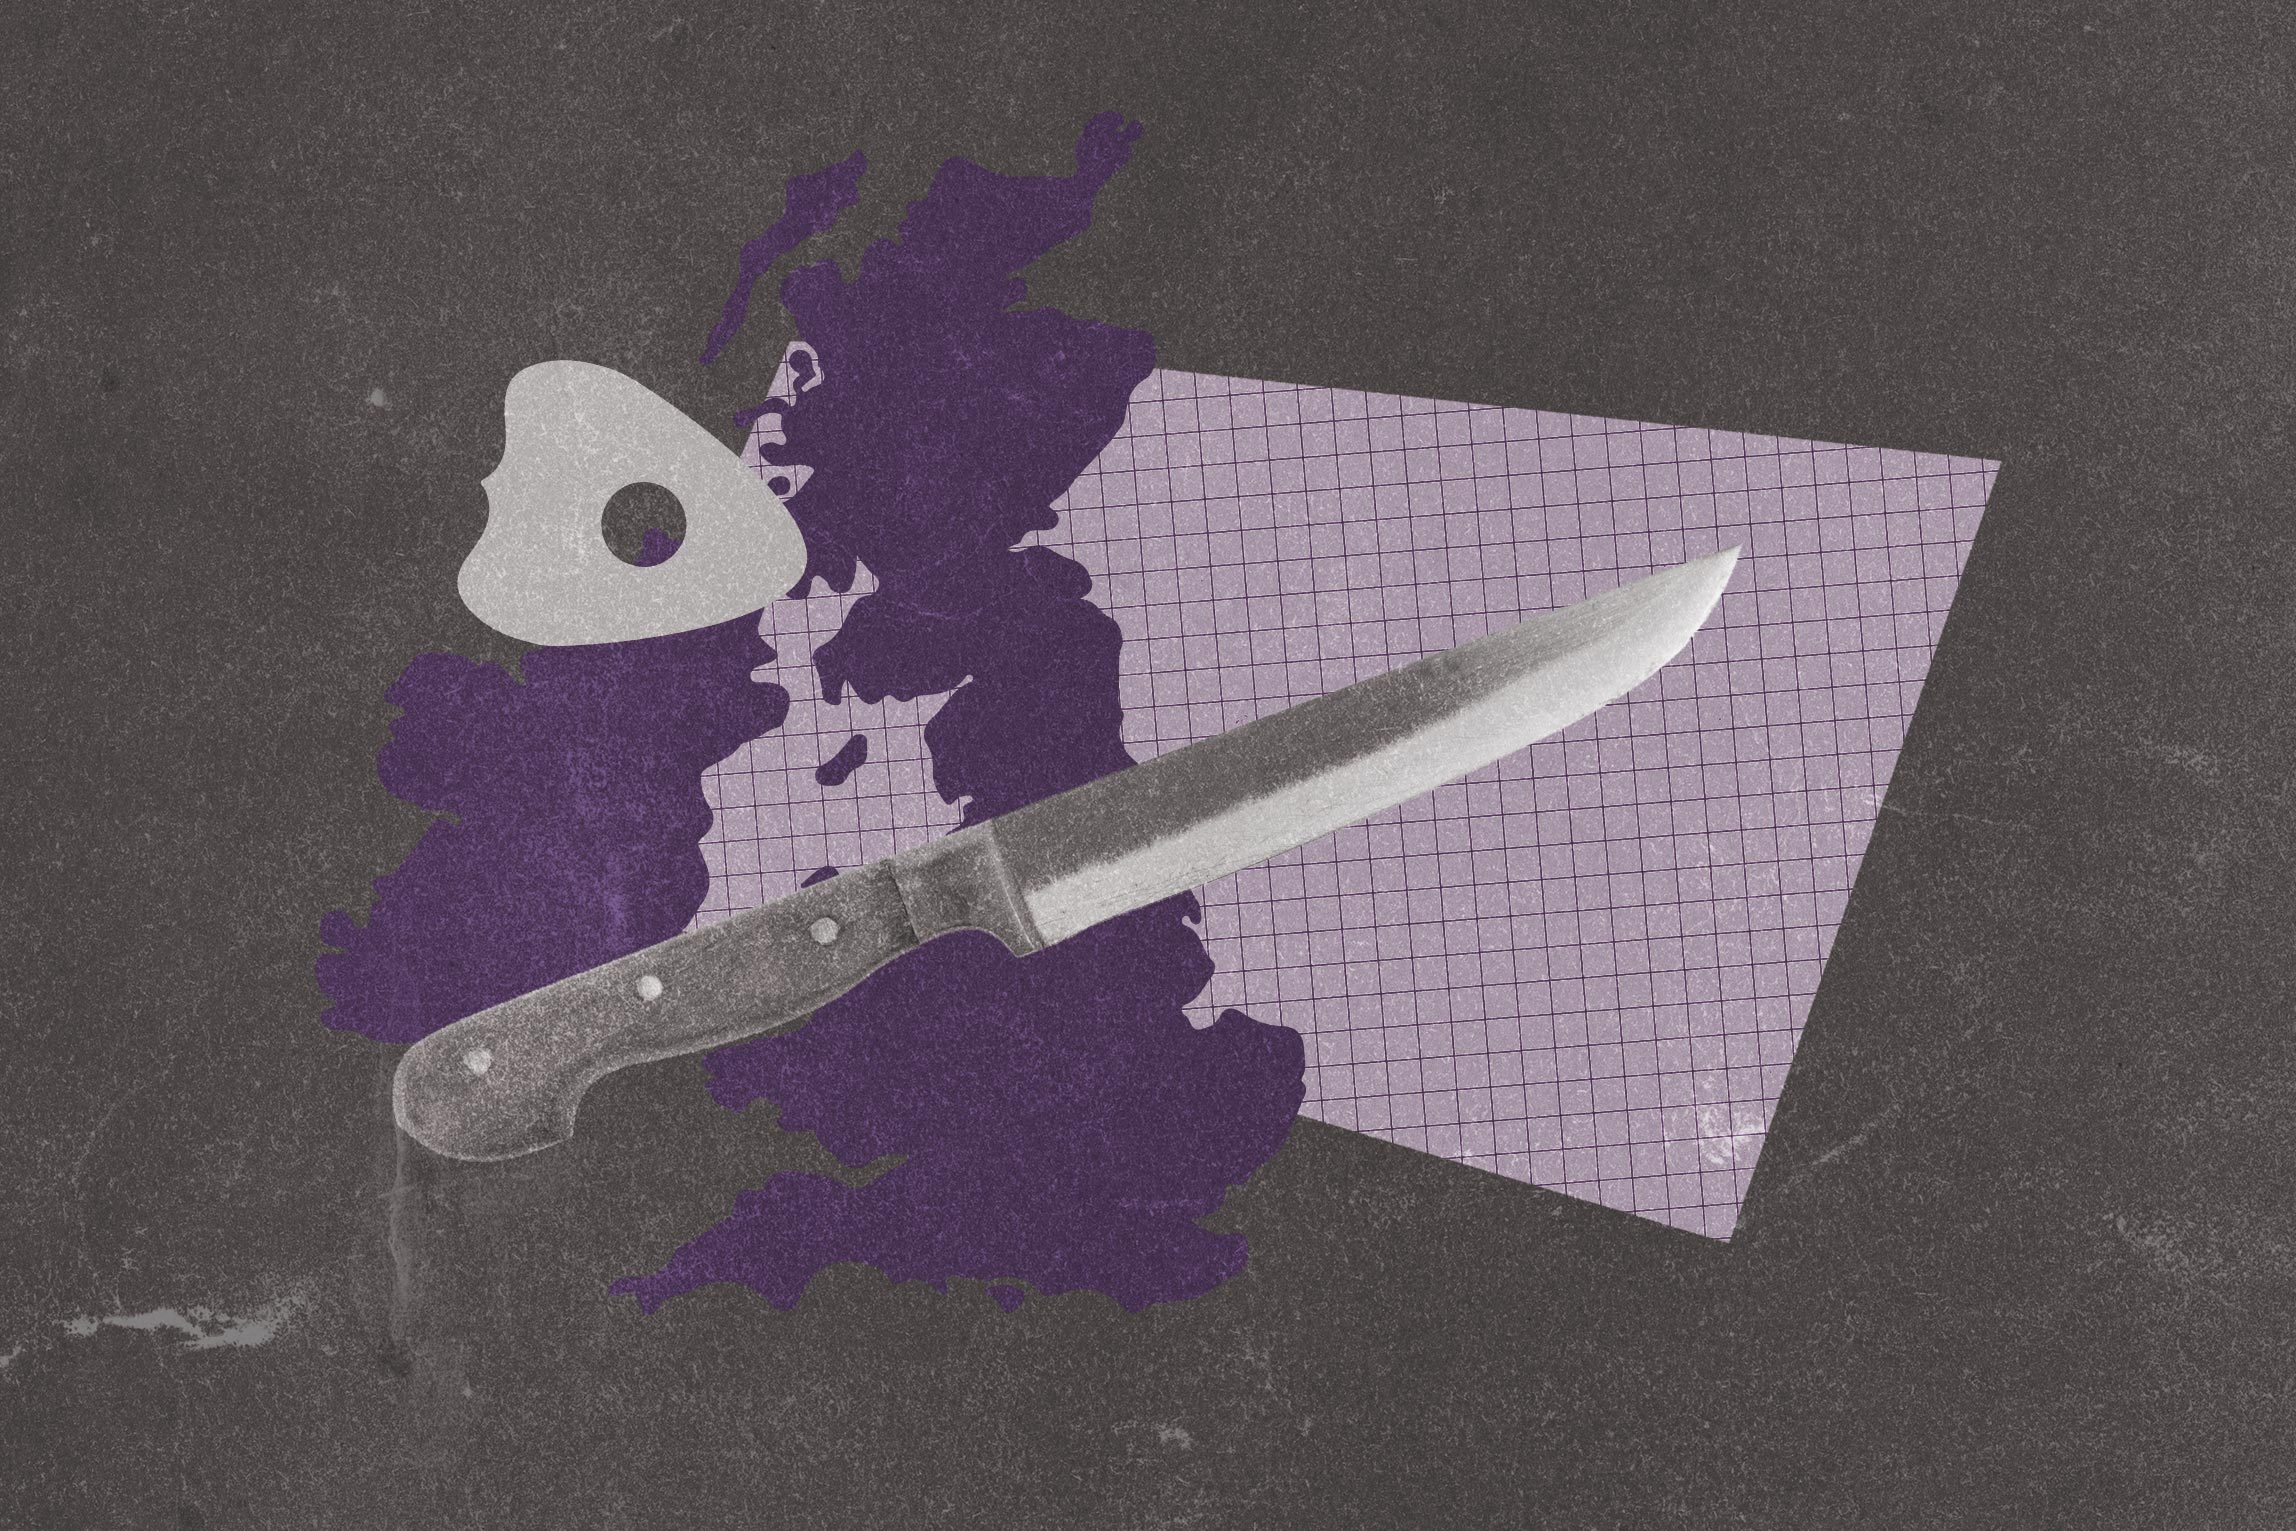 Collage of knife, outline of United Kingdom